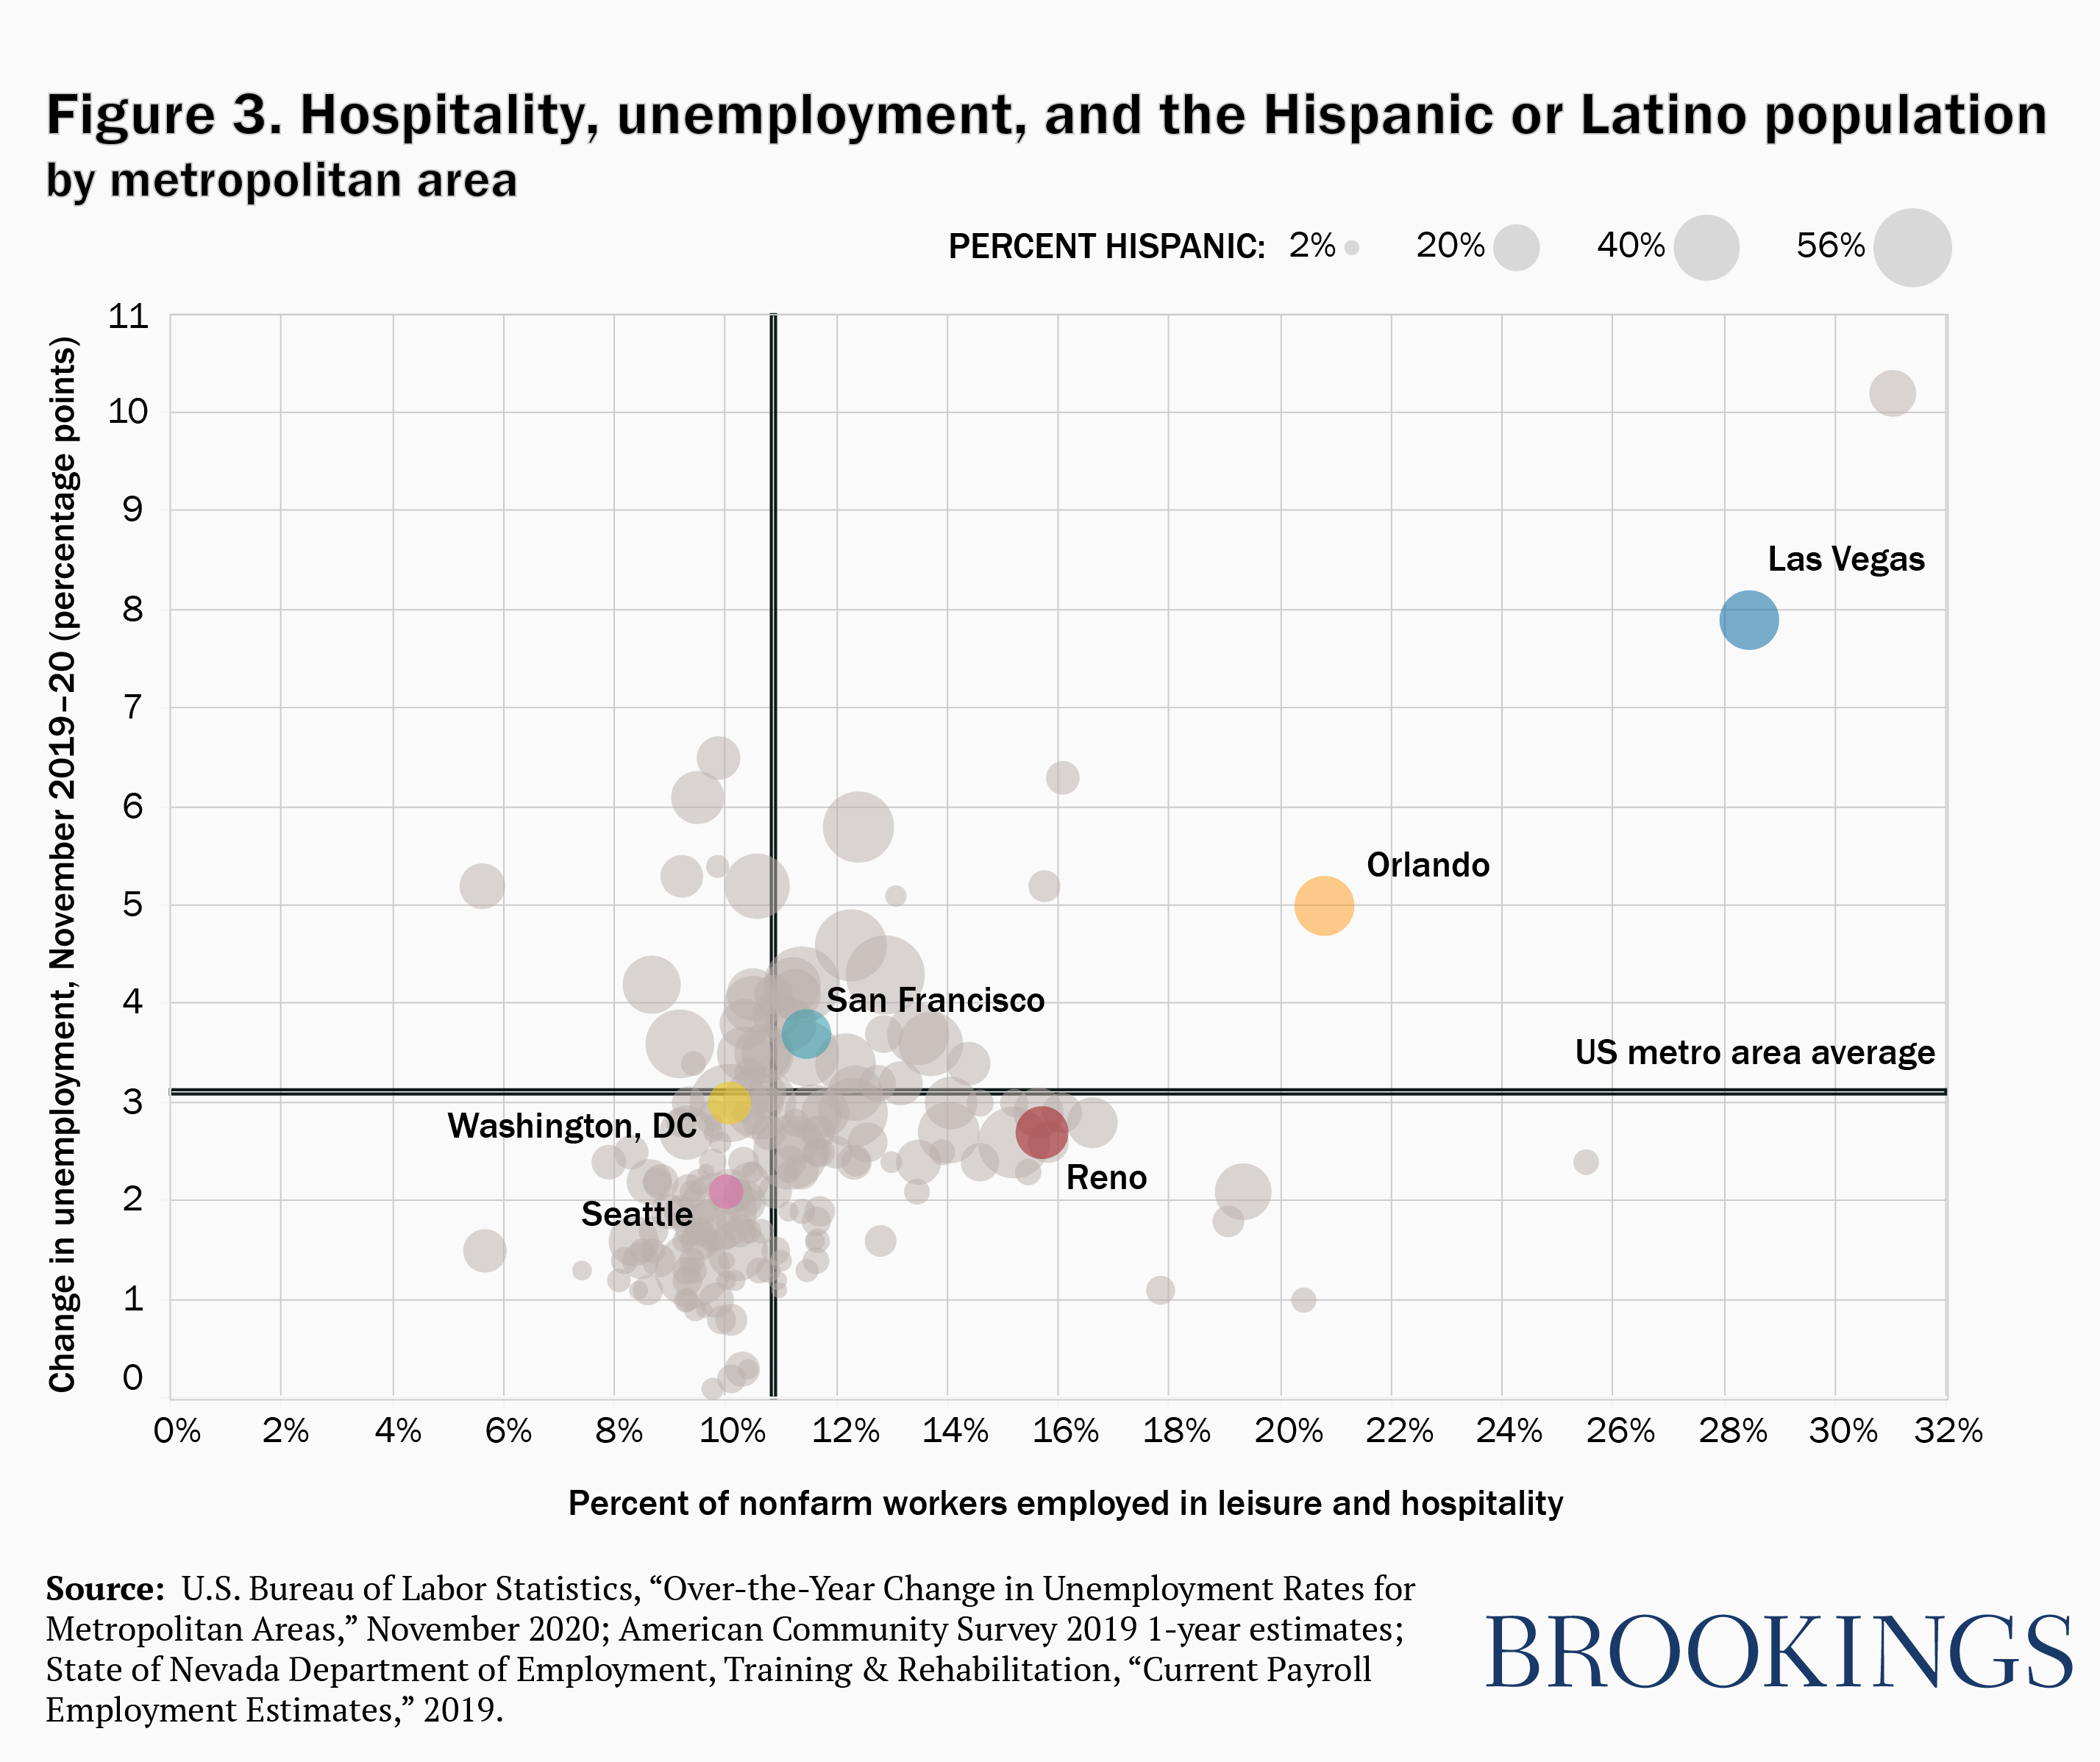 Hospitality, unemployment, and the Hispanic or Latino Population by Metropolitan Area